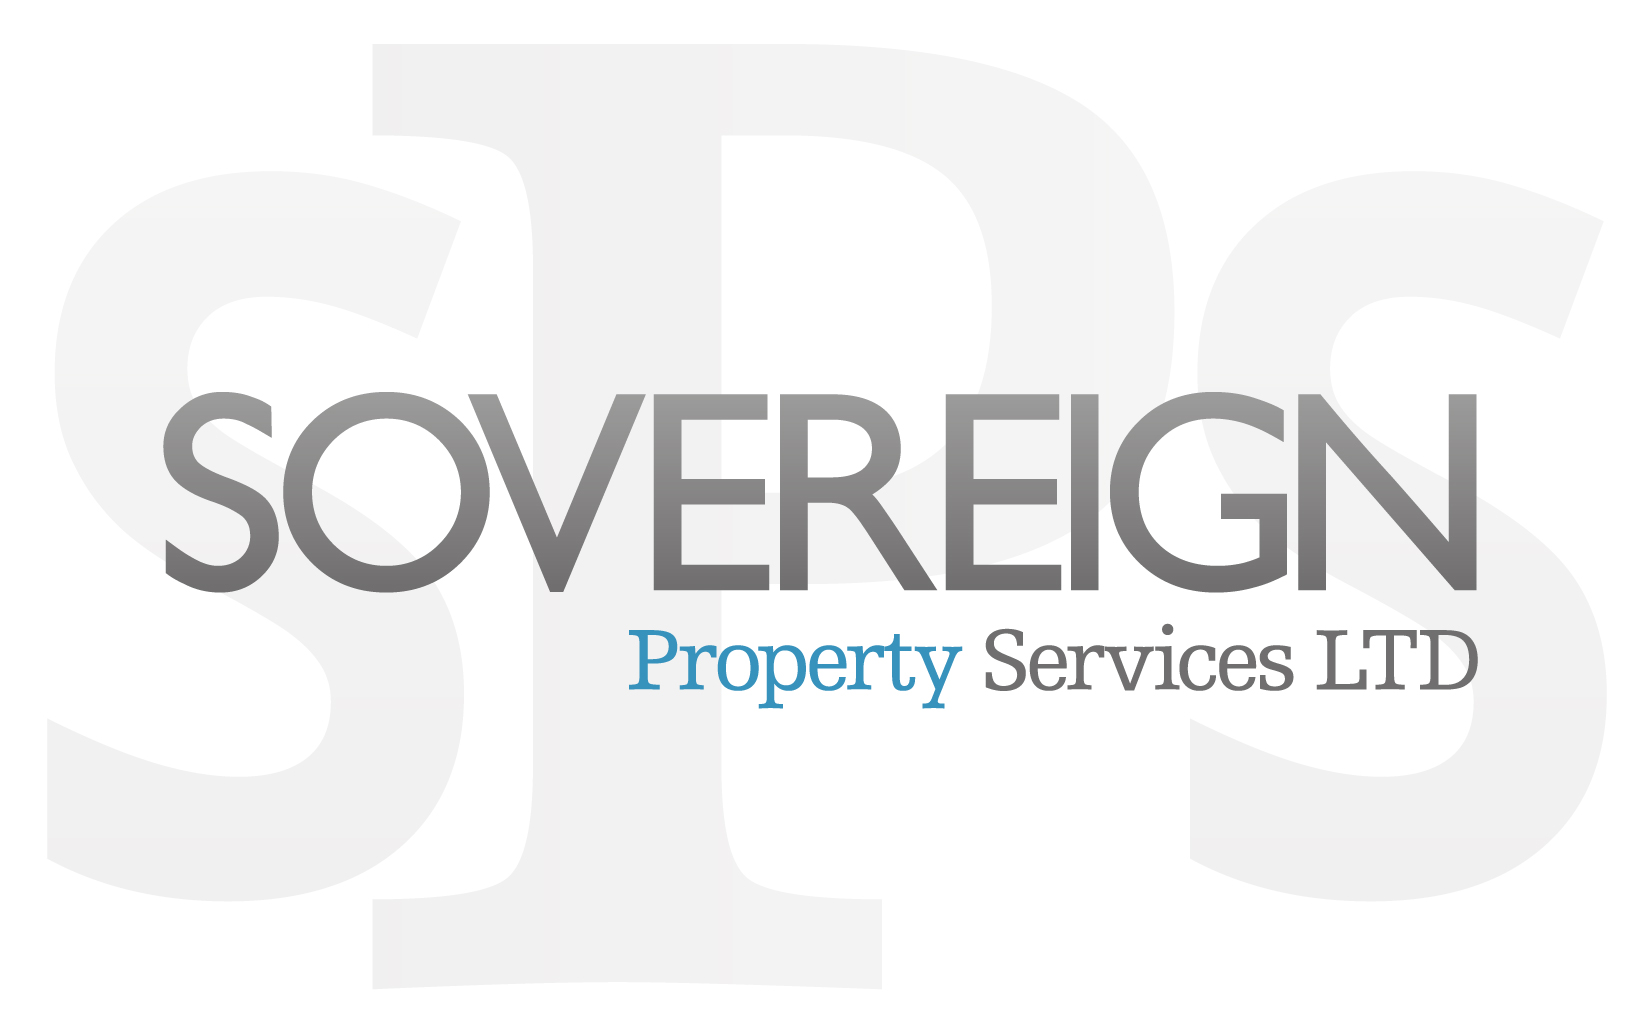 sovereign property services